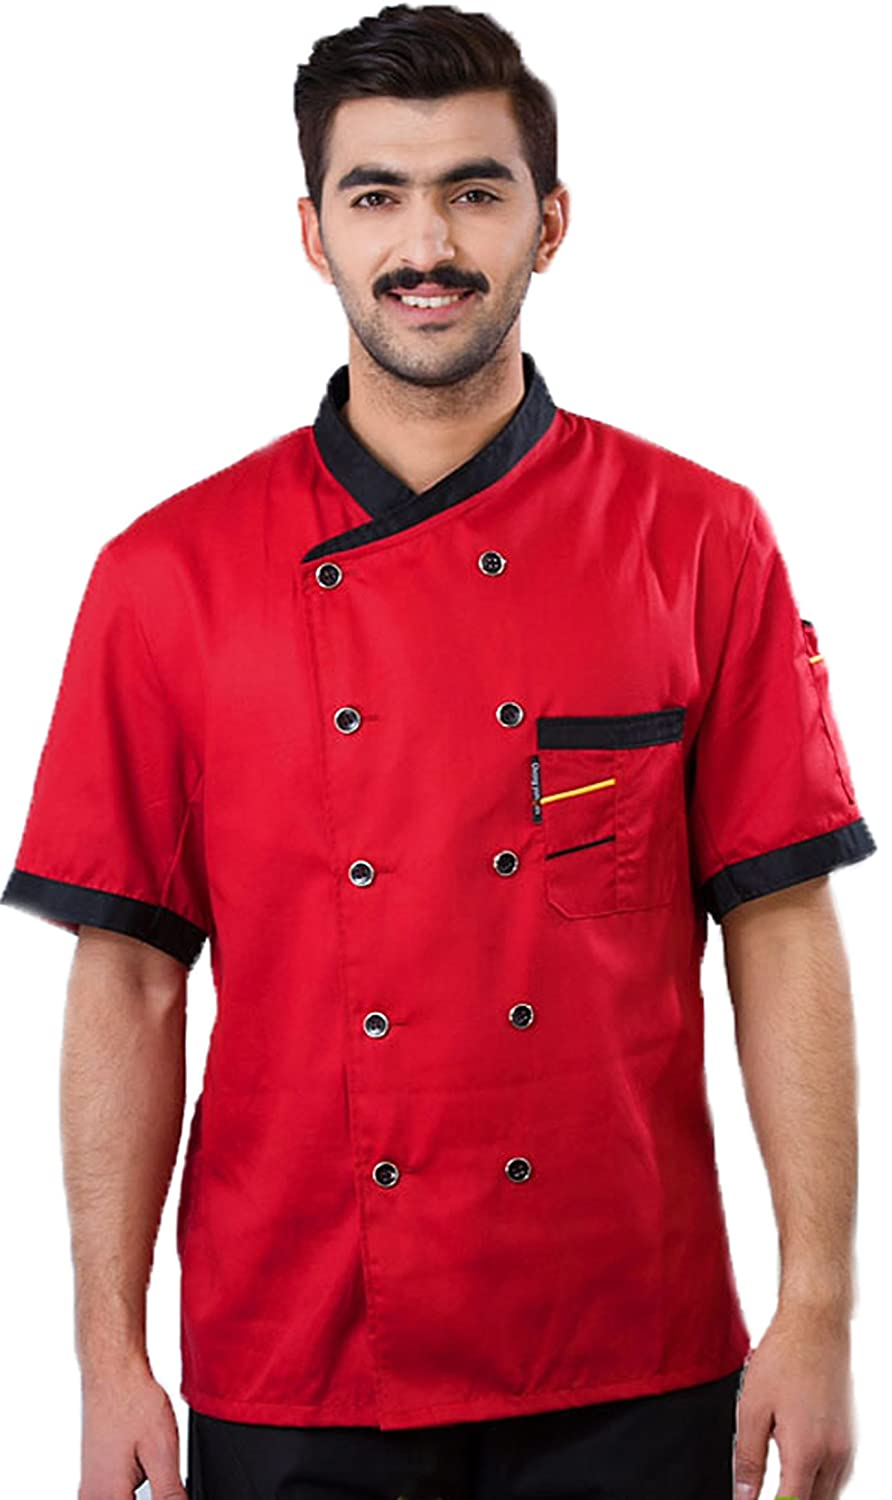 3colors Chef Clothing Hotel Restaurant Chefs Work Clothes Short Sleeve Chef Jack (Black, Red, White)